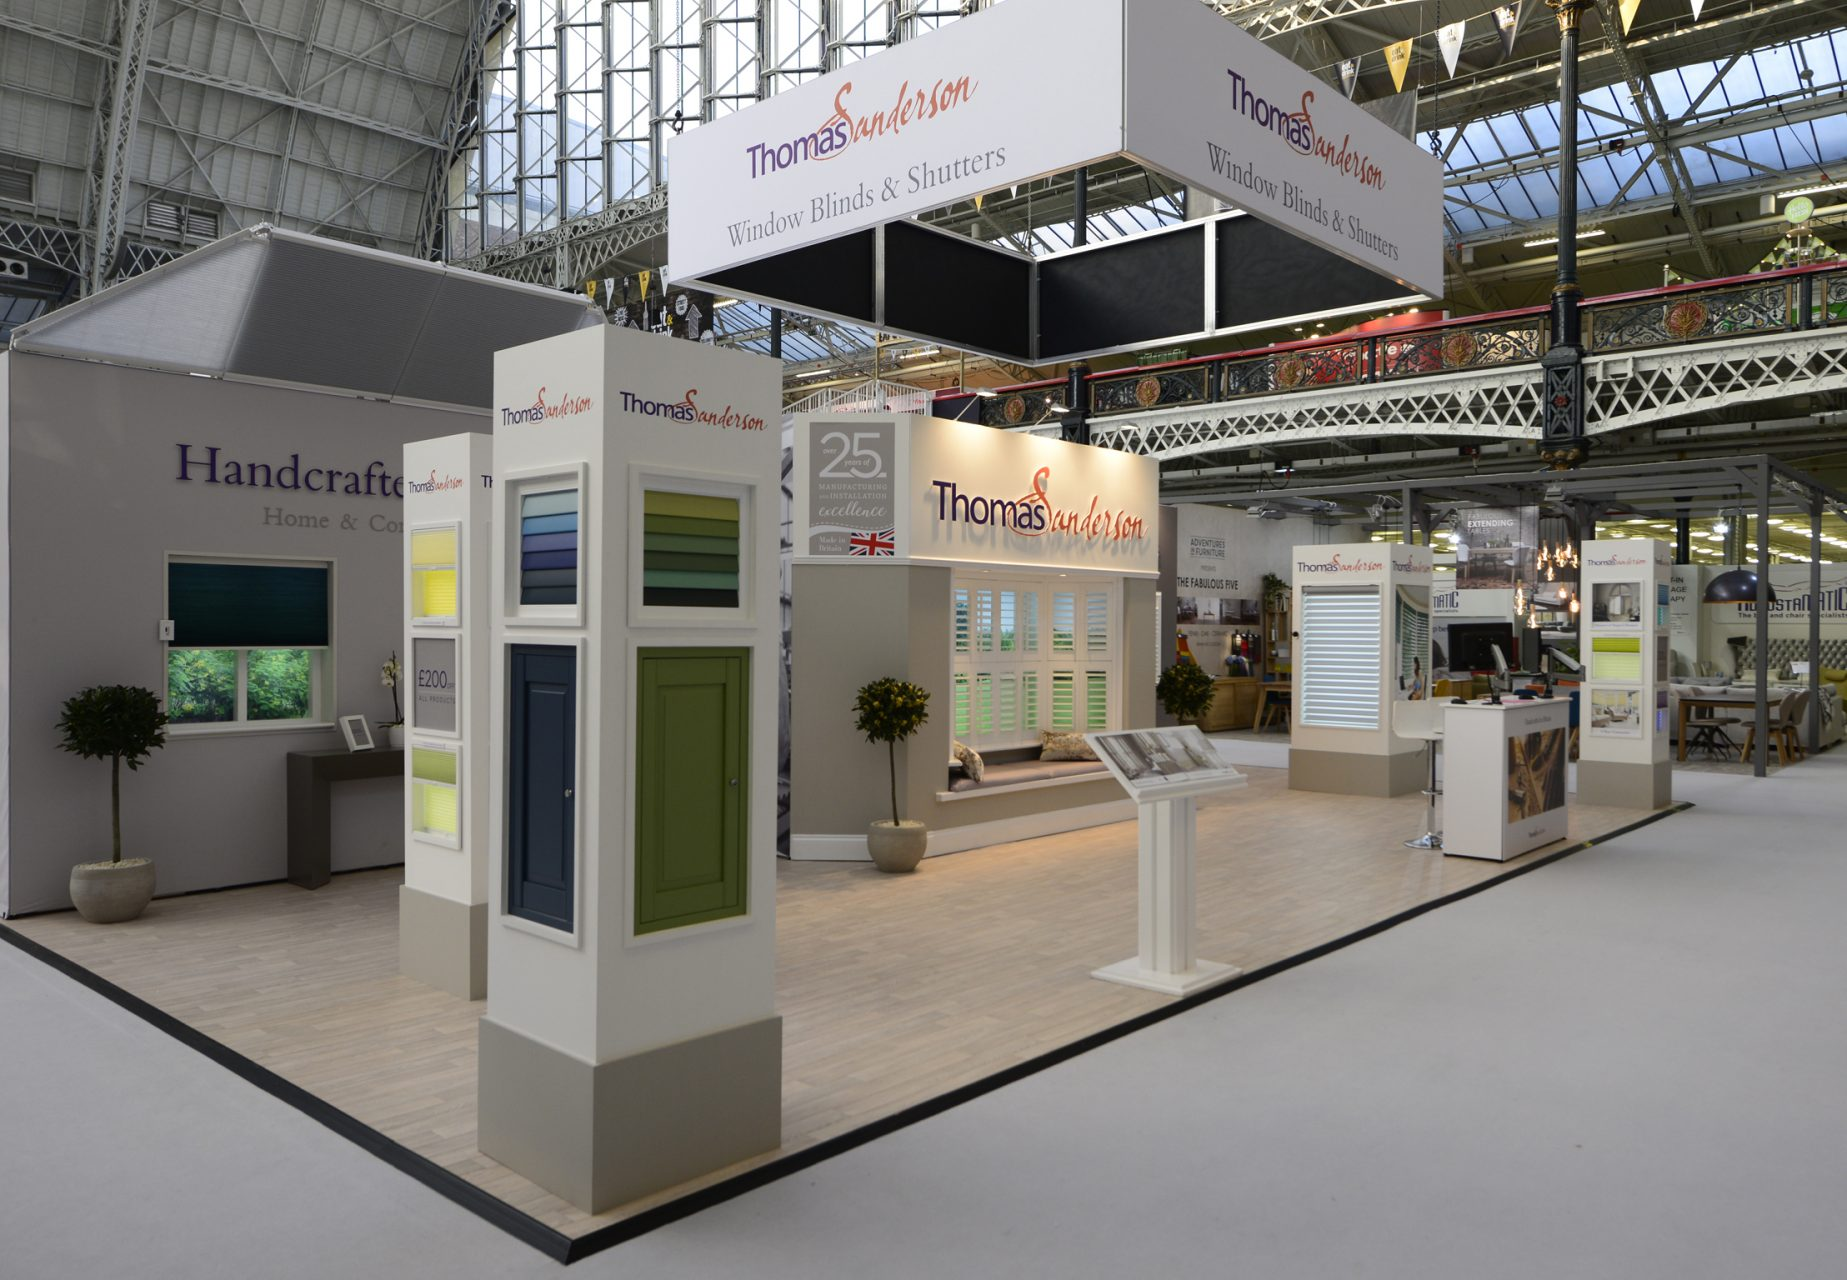 Exhibition Displays for Thomas Sanderson exhibit at Olympia, created and installed by Octink